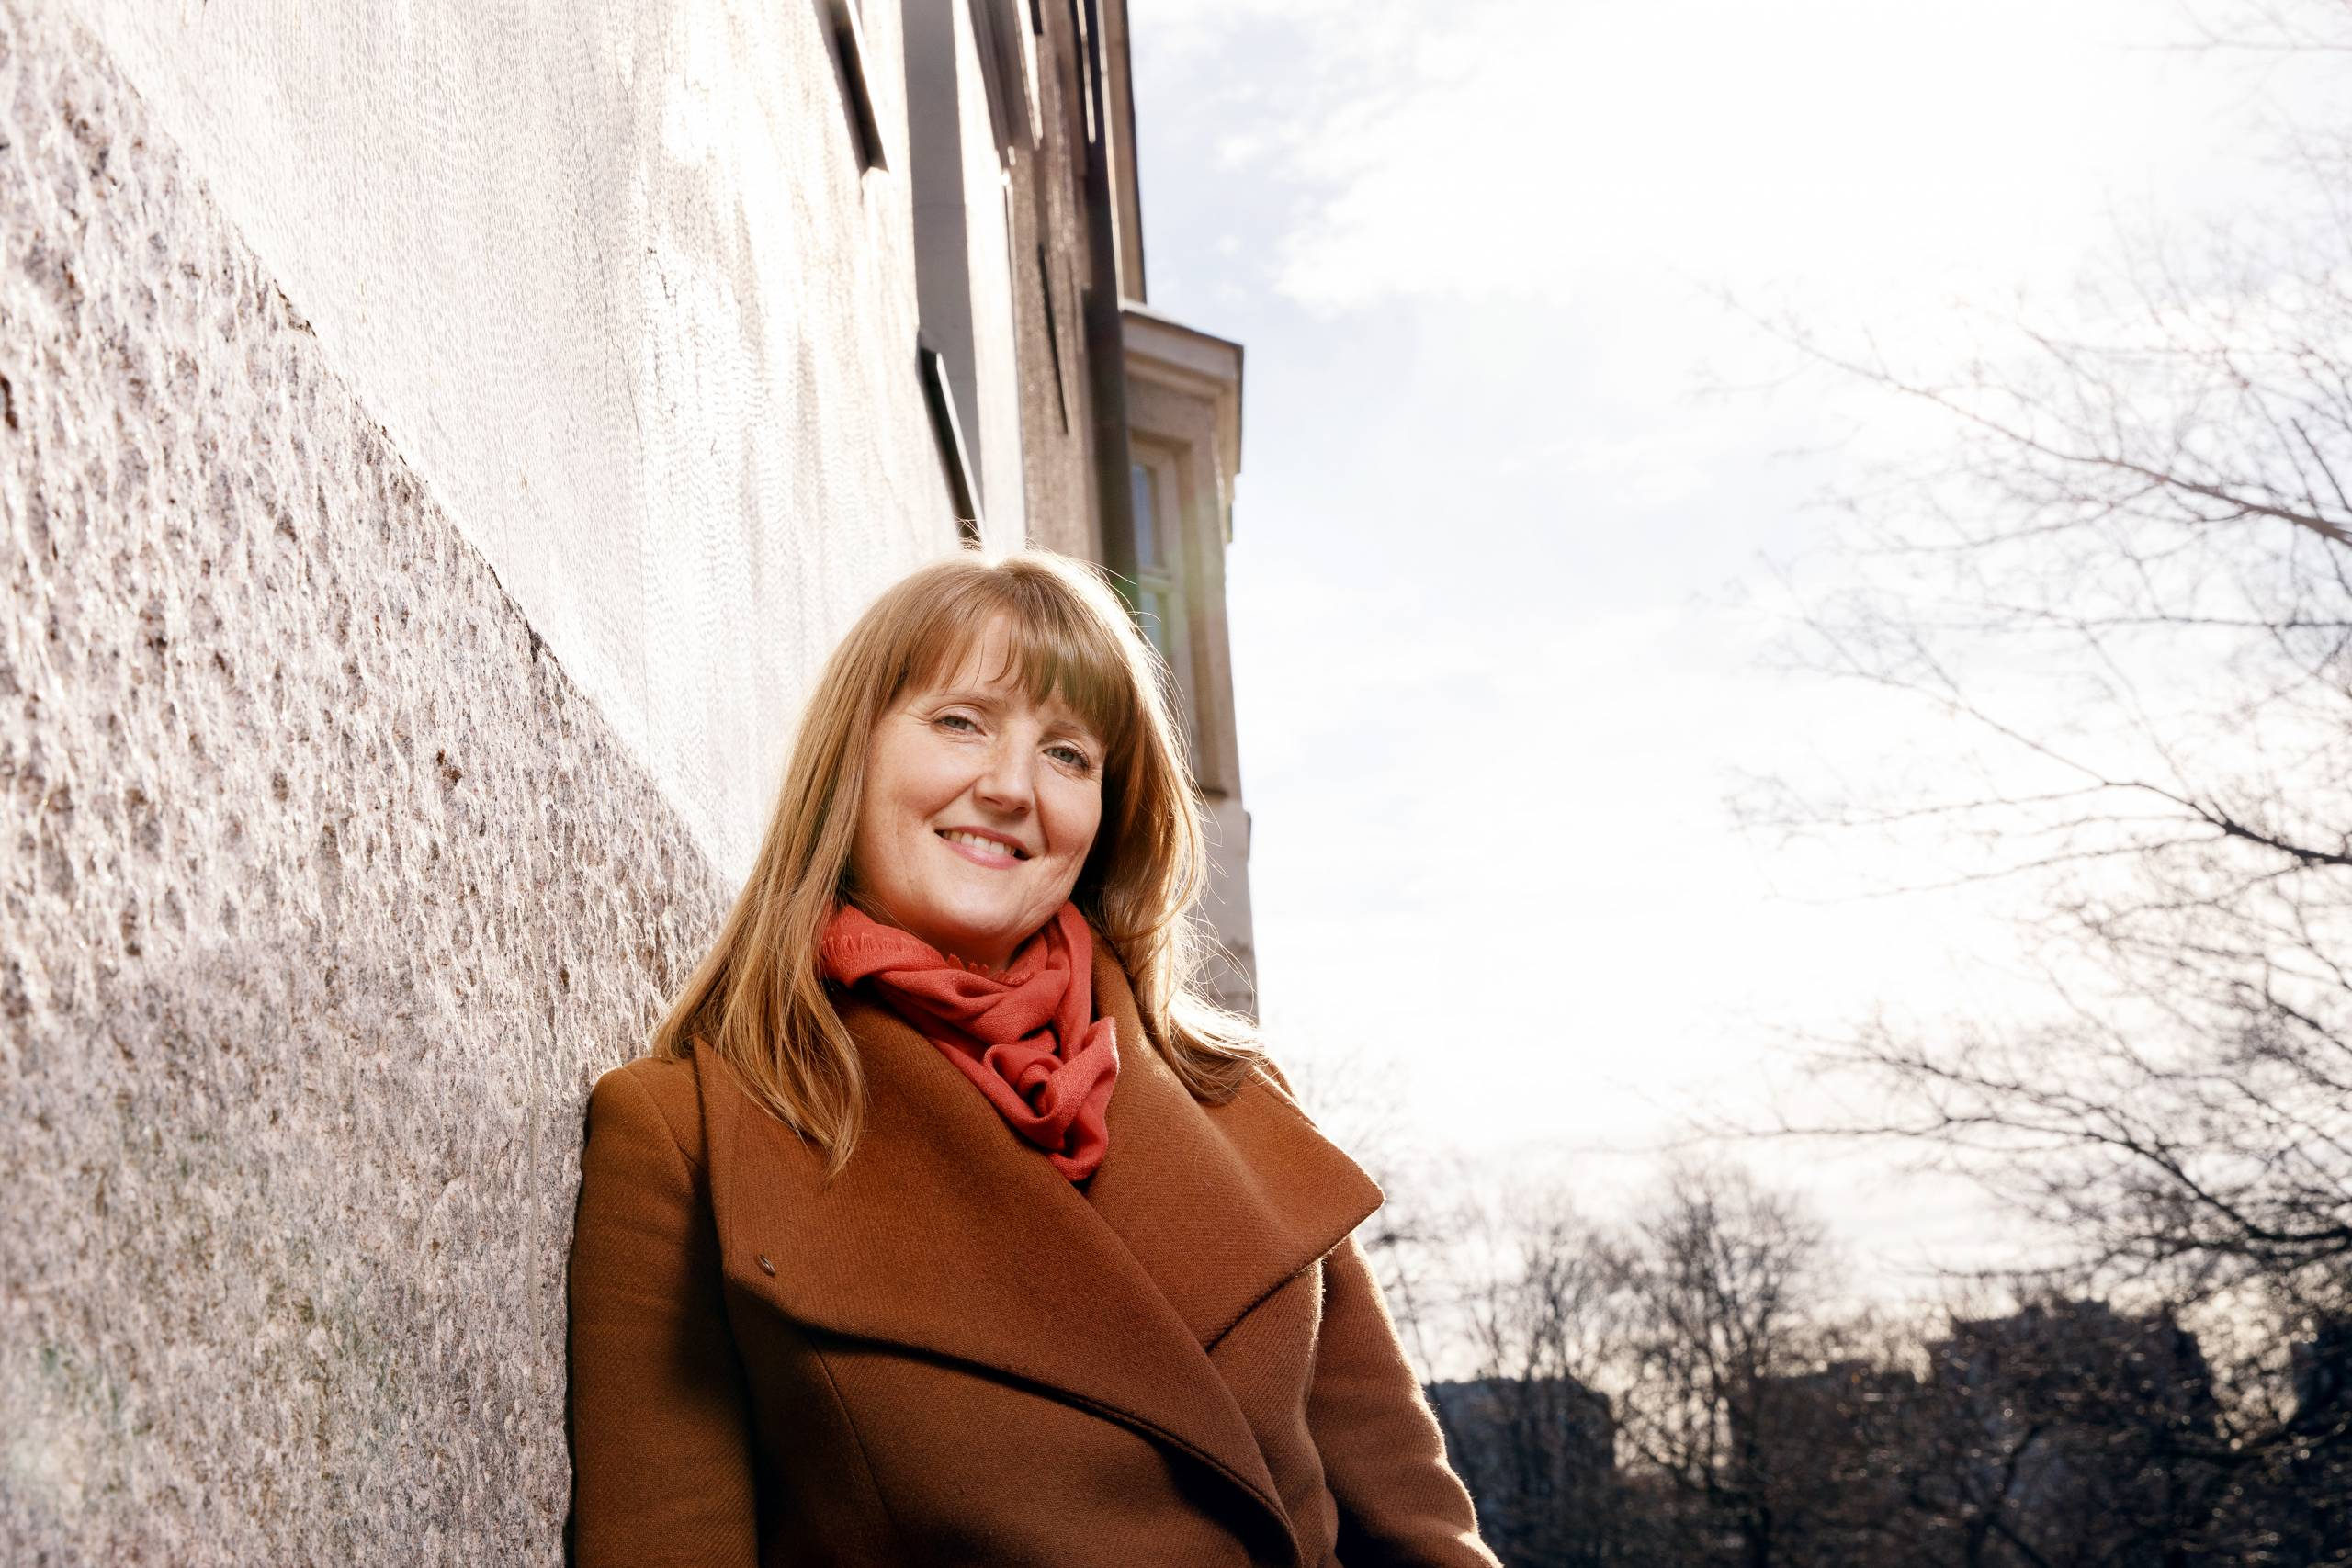 Emmi Jouslehto leaning on a wall and look straight in the camera. A building and trees in the background.